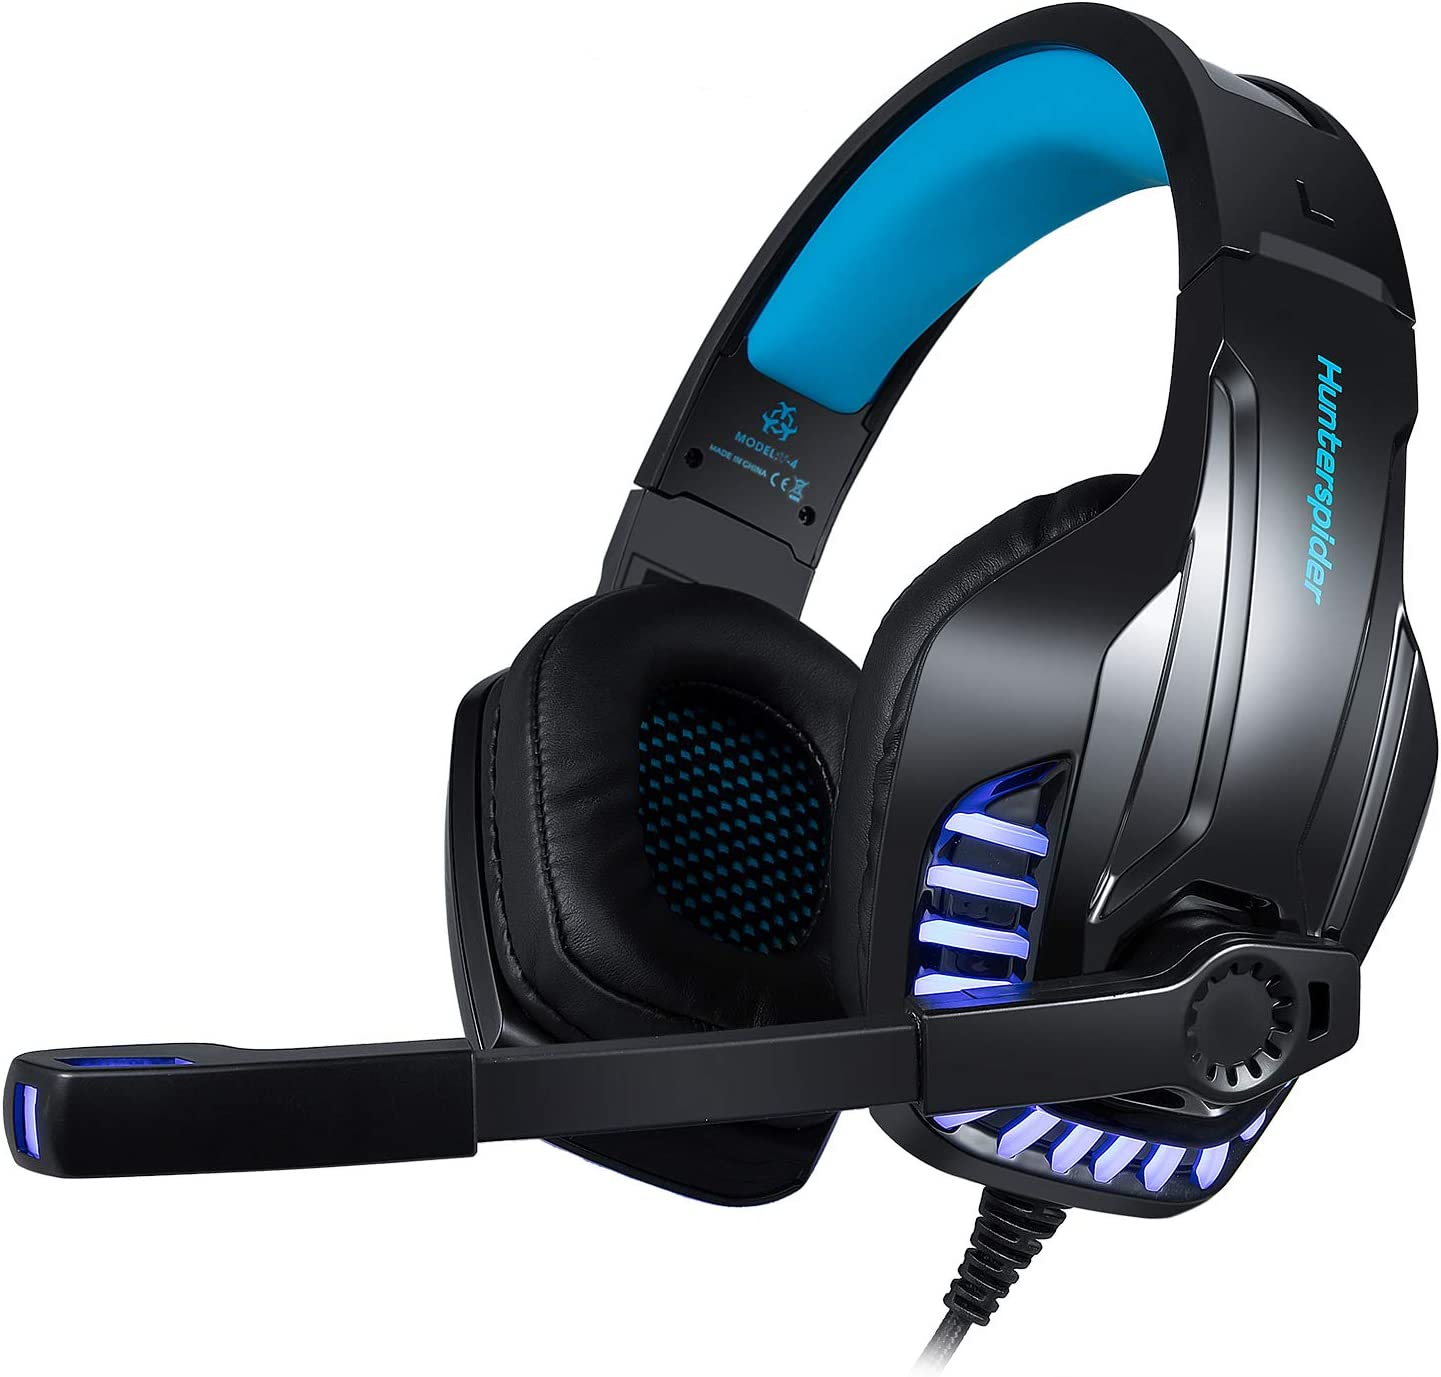 Professional Gaming Headset for FPS and Game Lovers, Noise Cancelling Headphones with Mic, Led Light, Bass Surround, Soft Memory Earmuffs,works with PS4, PC, Xbox One Controller AMiLove